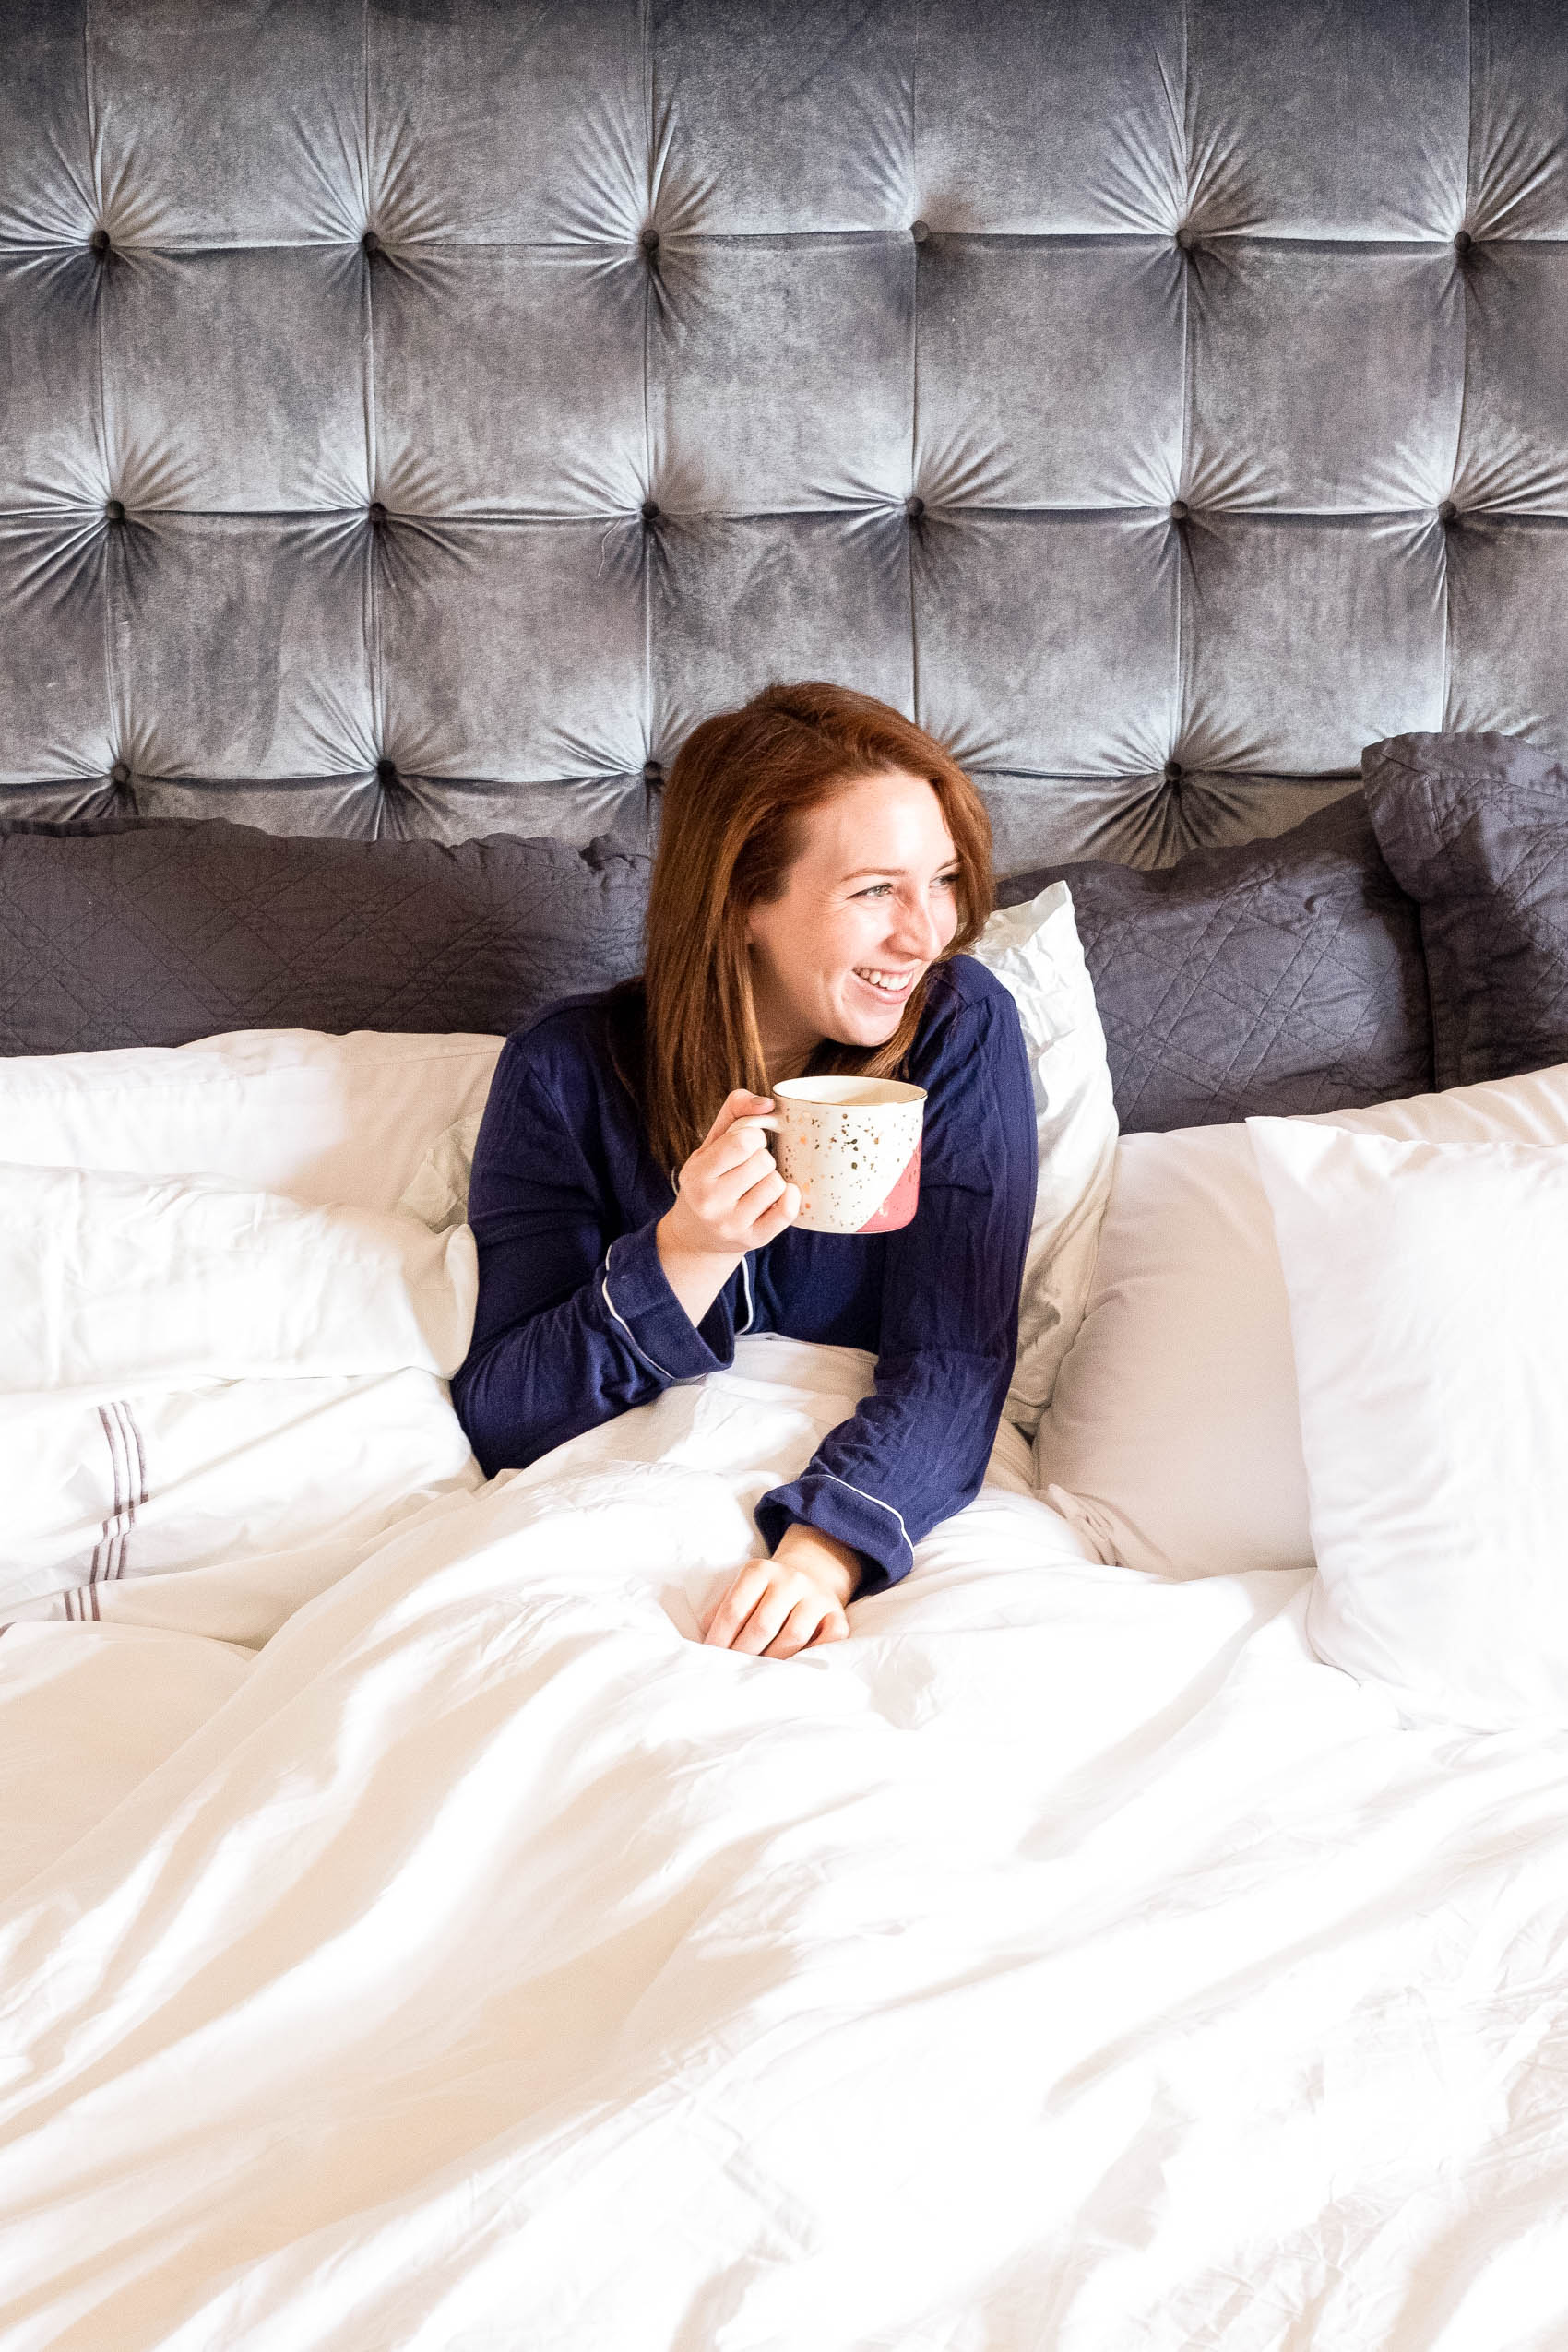 Sitting on a bed with a cup of coffee